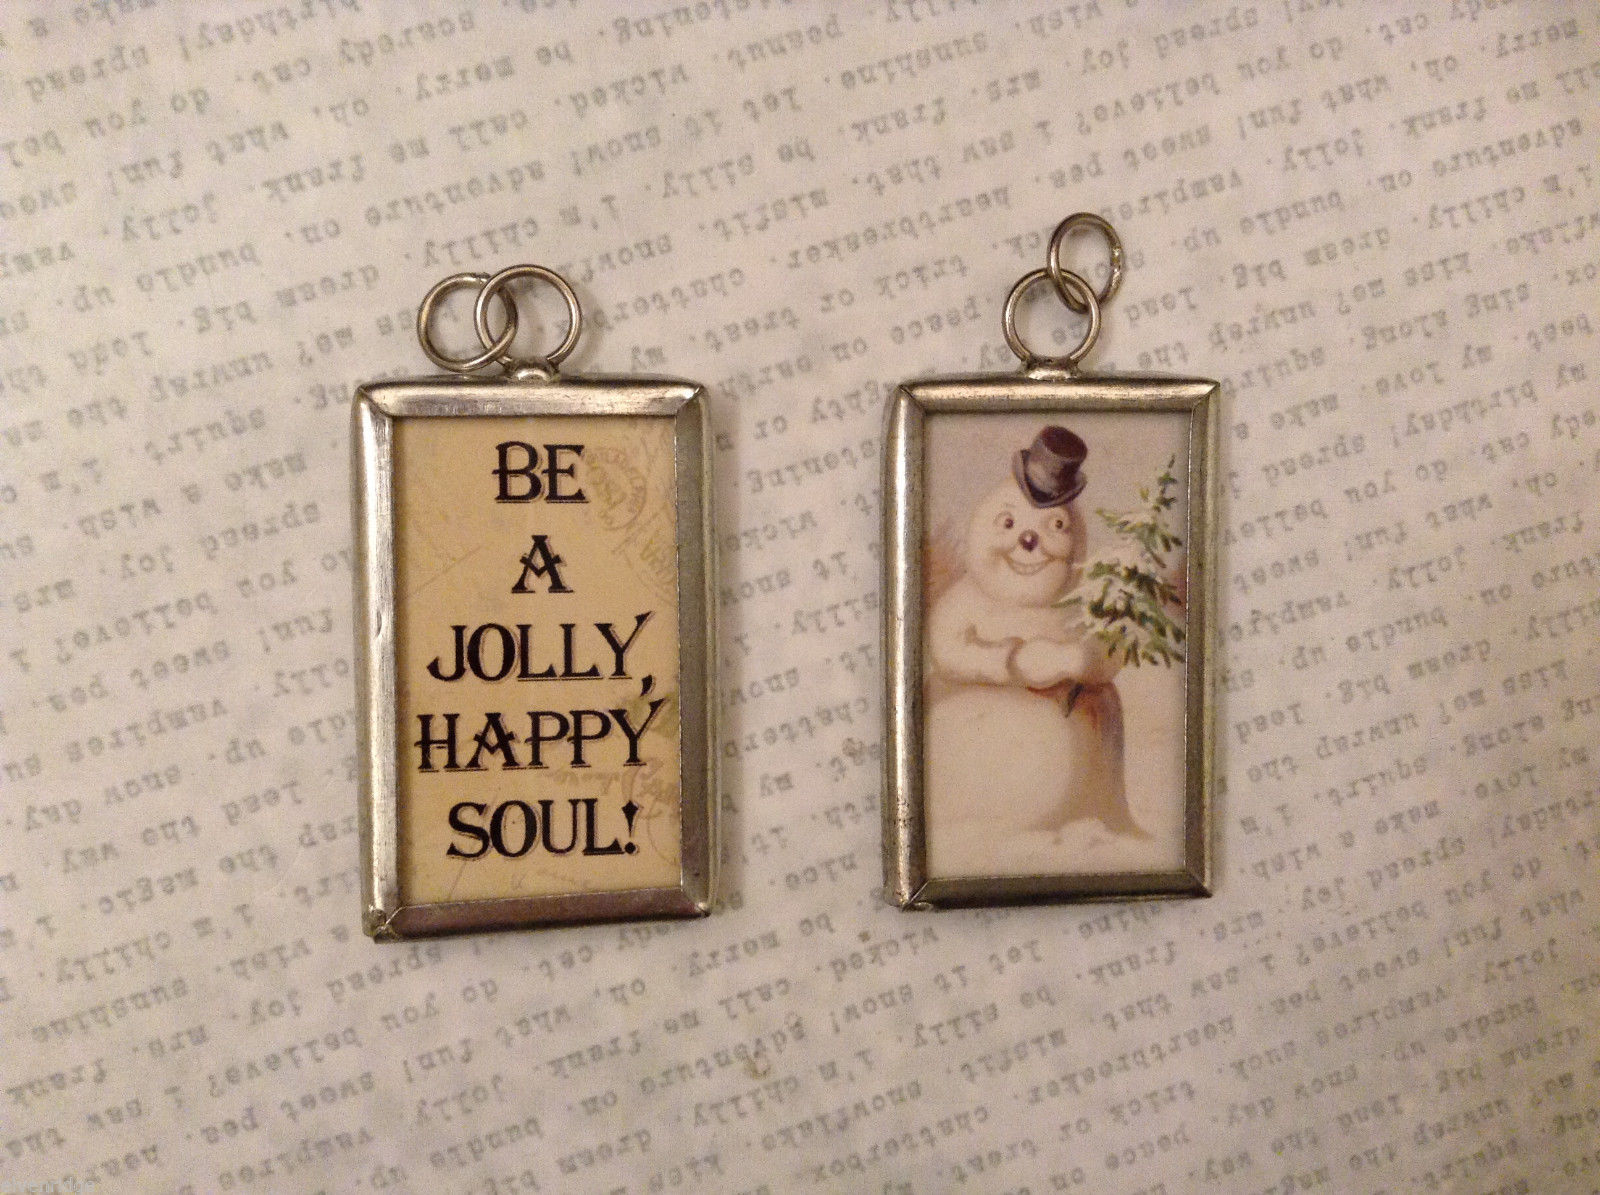 2 sided charm tag in metal frame vintage style - Be a Jolly Happy soul / Snowman